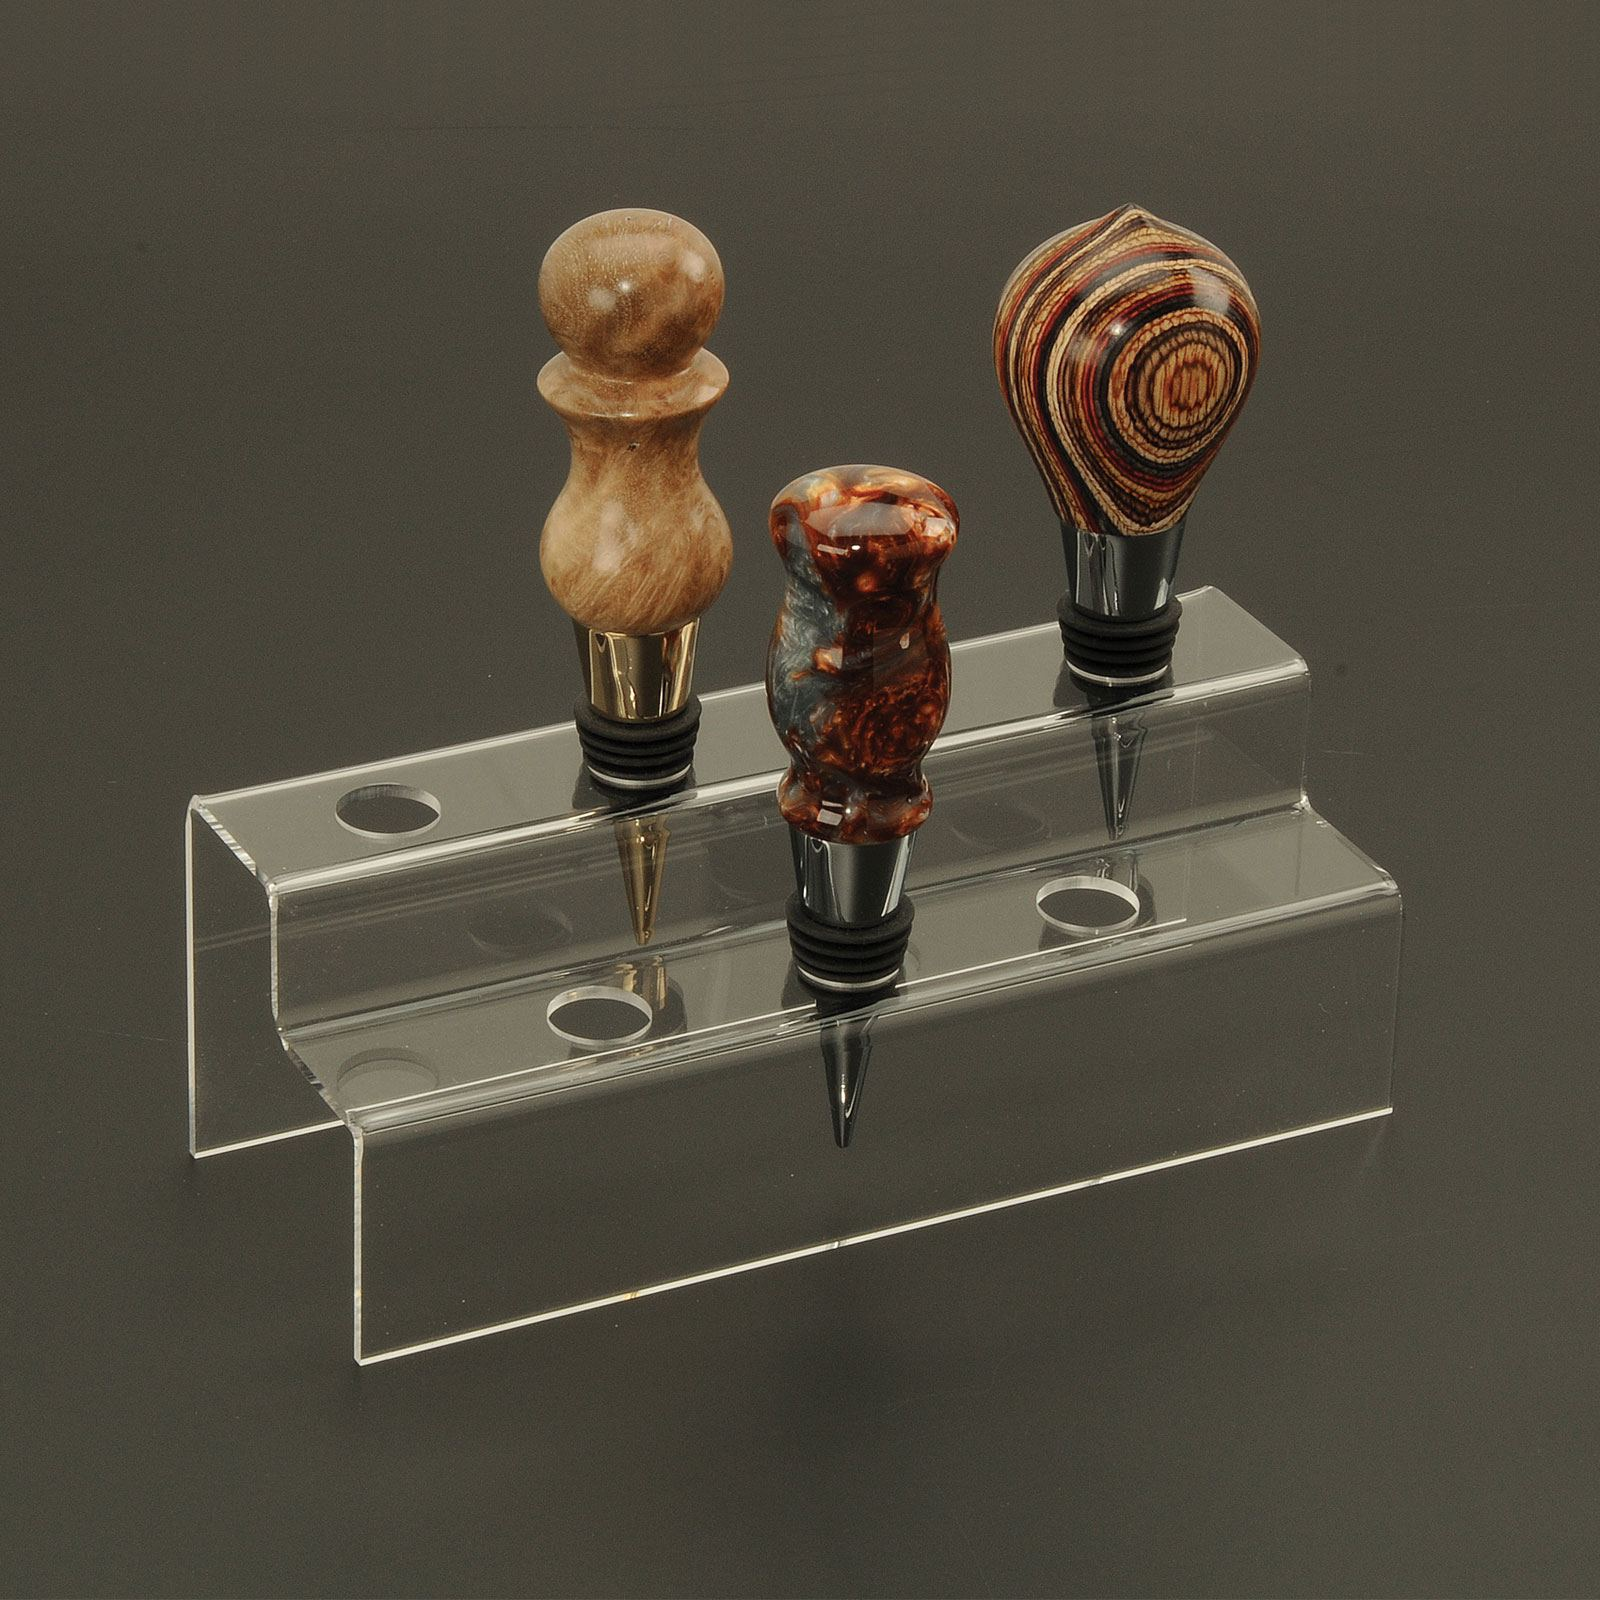 Acrylic Bottle Stopper Display At Penn State Industries